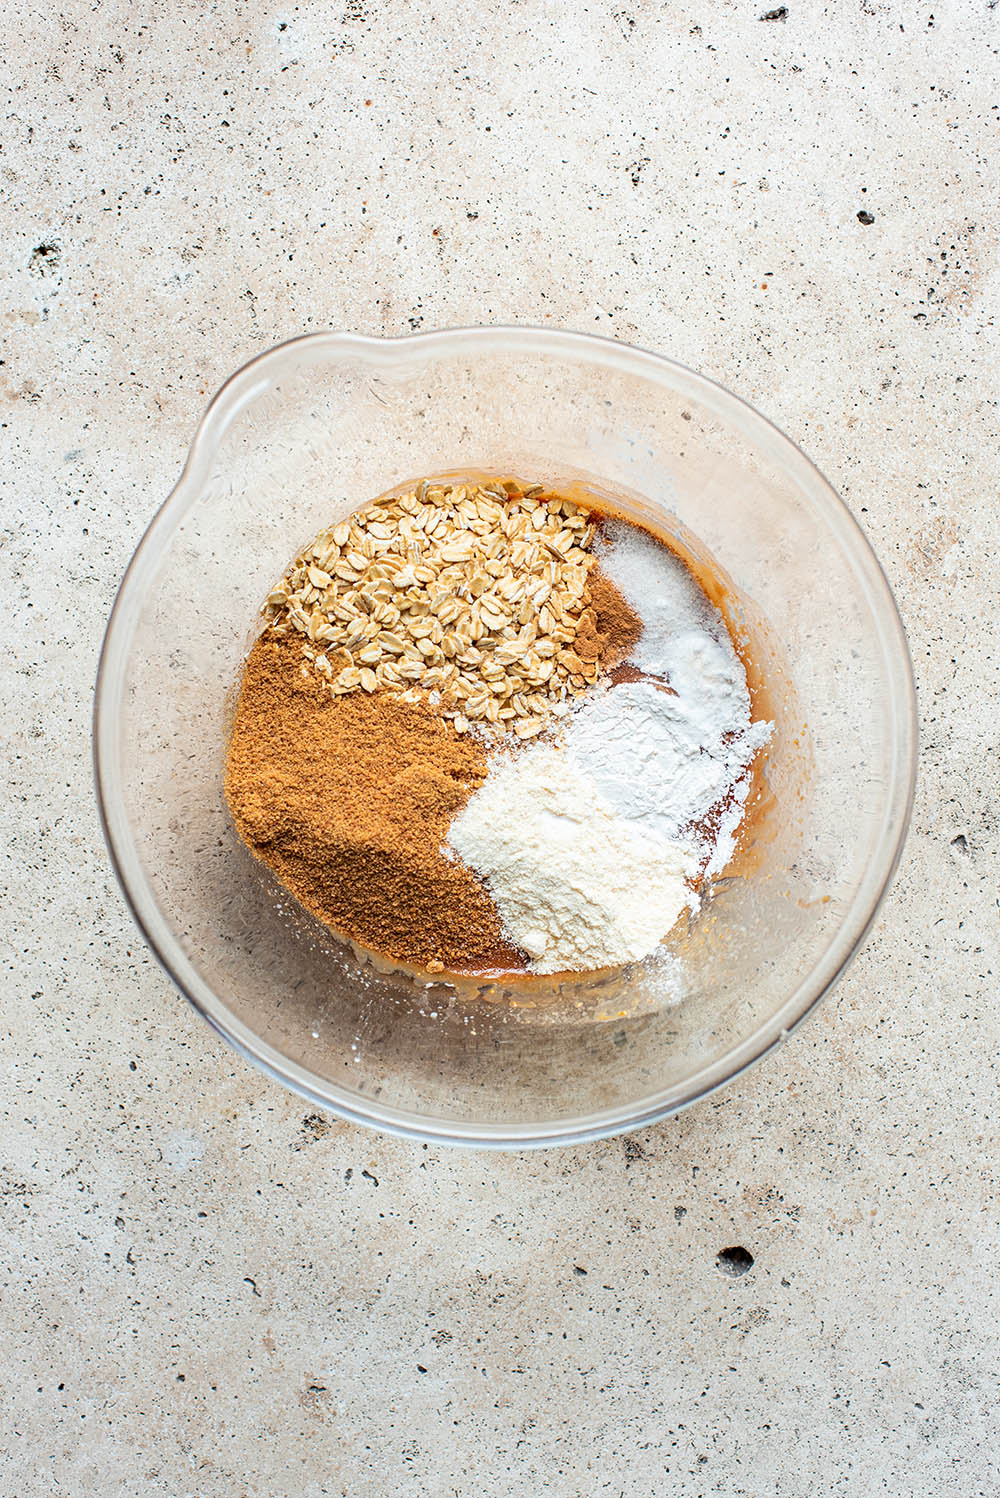 Coconut sugar, coconut flour, oats, and flavourings added to peanut butter mixture.